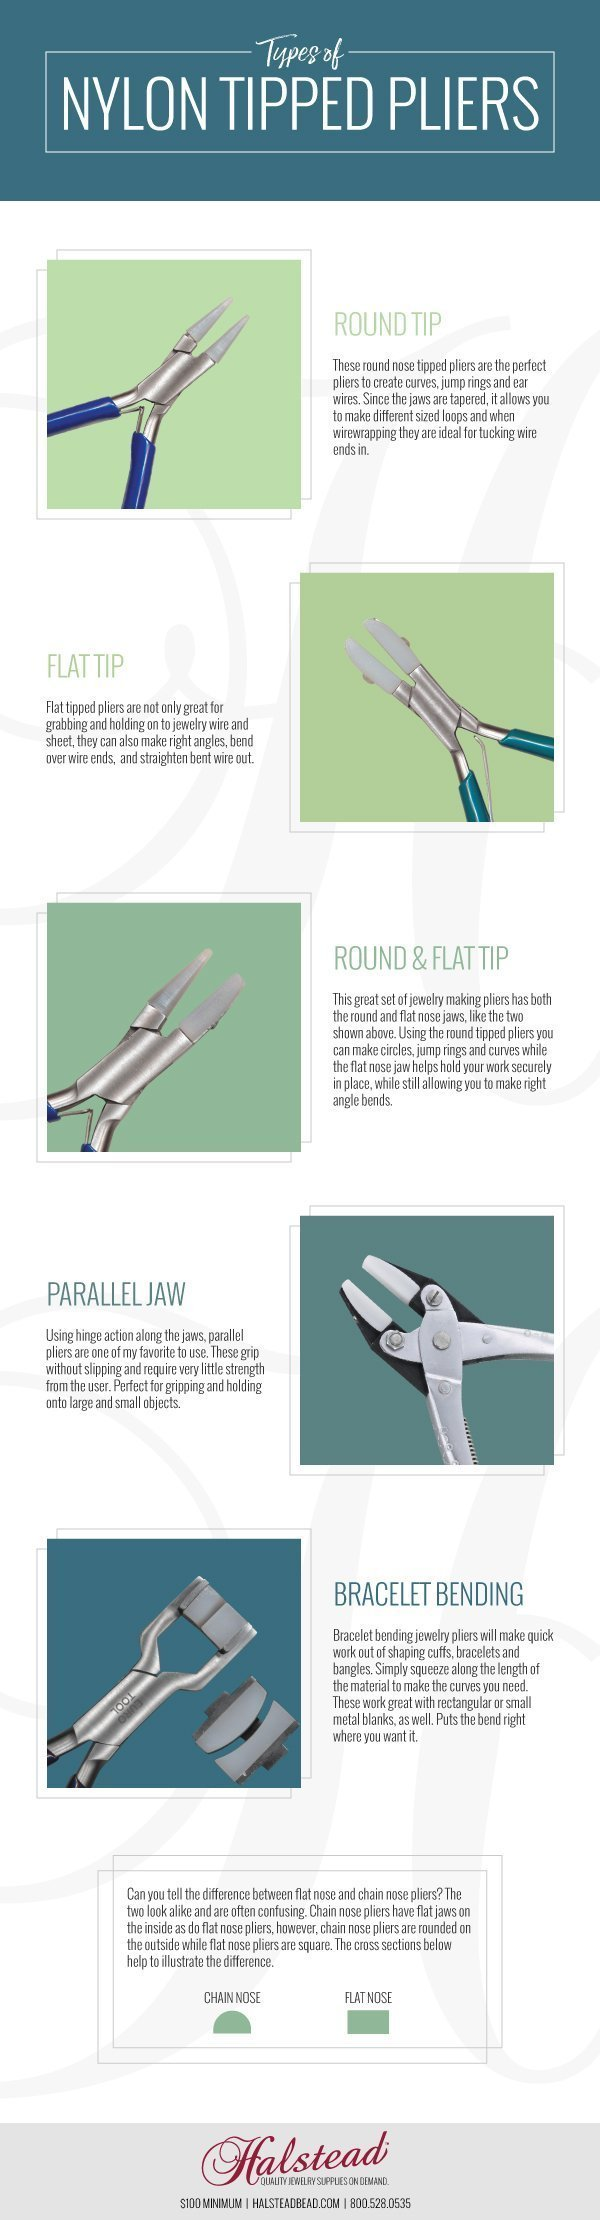 Infographic - Types of nylon tipped pliers